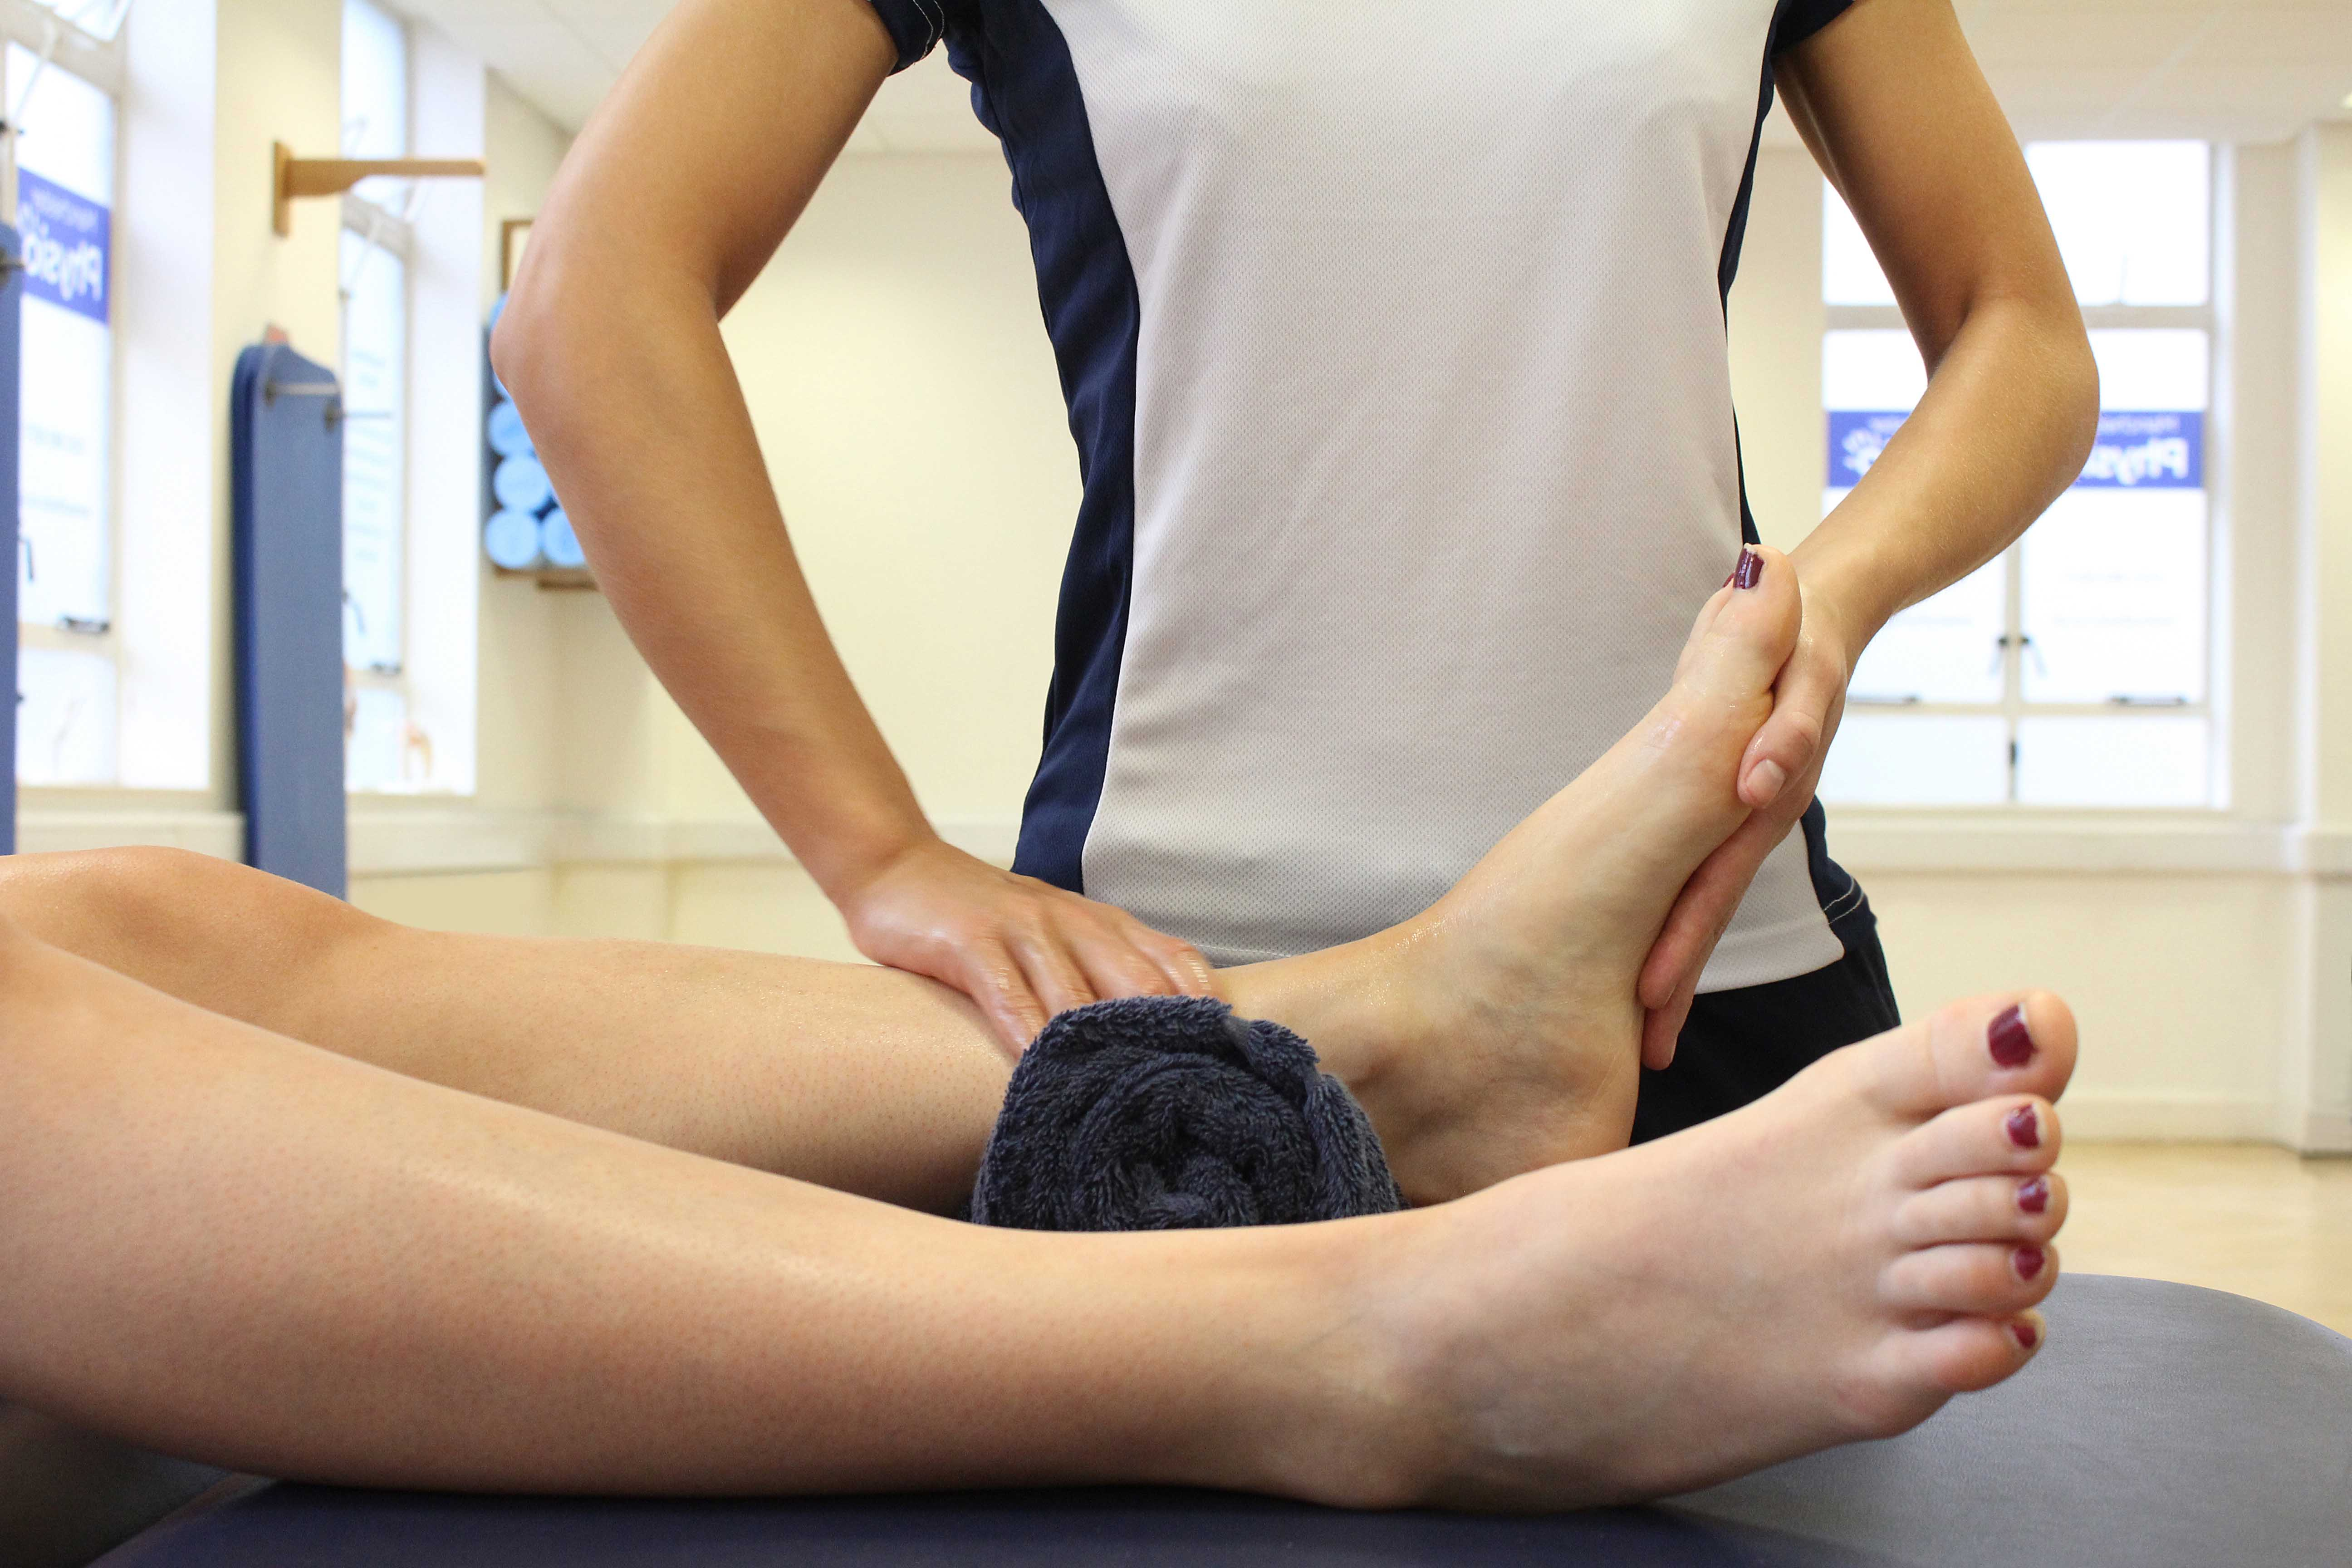 Stretches and mobilisations of the foot and ankle by a specilaist physiotherapist